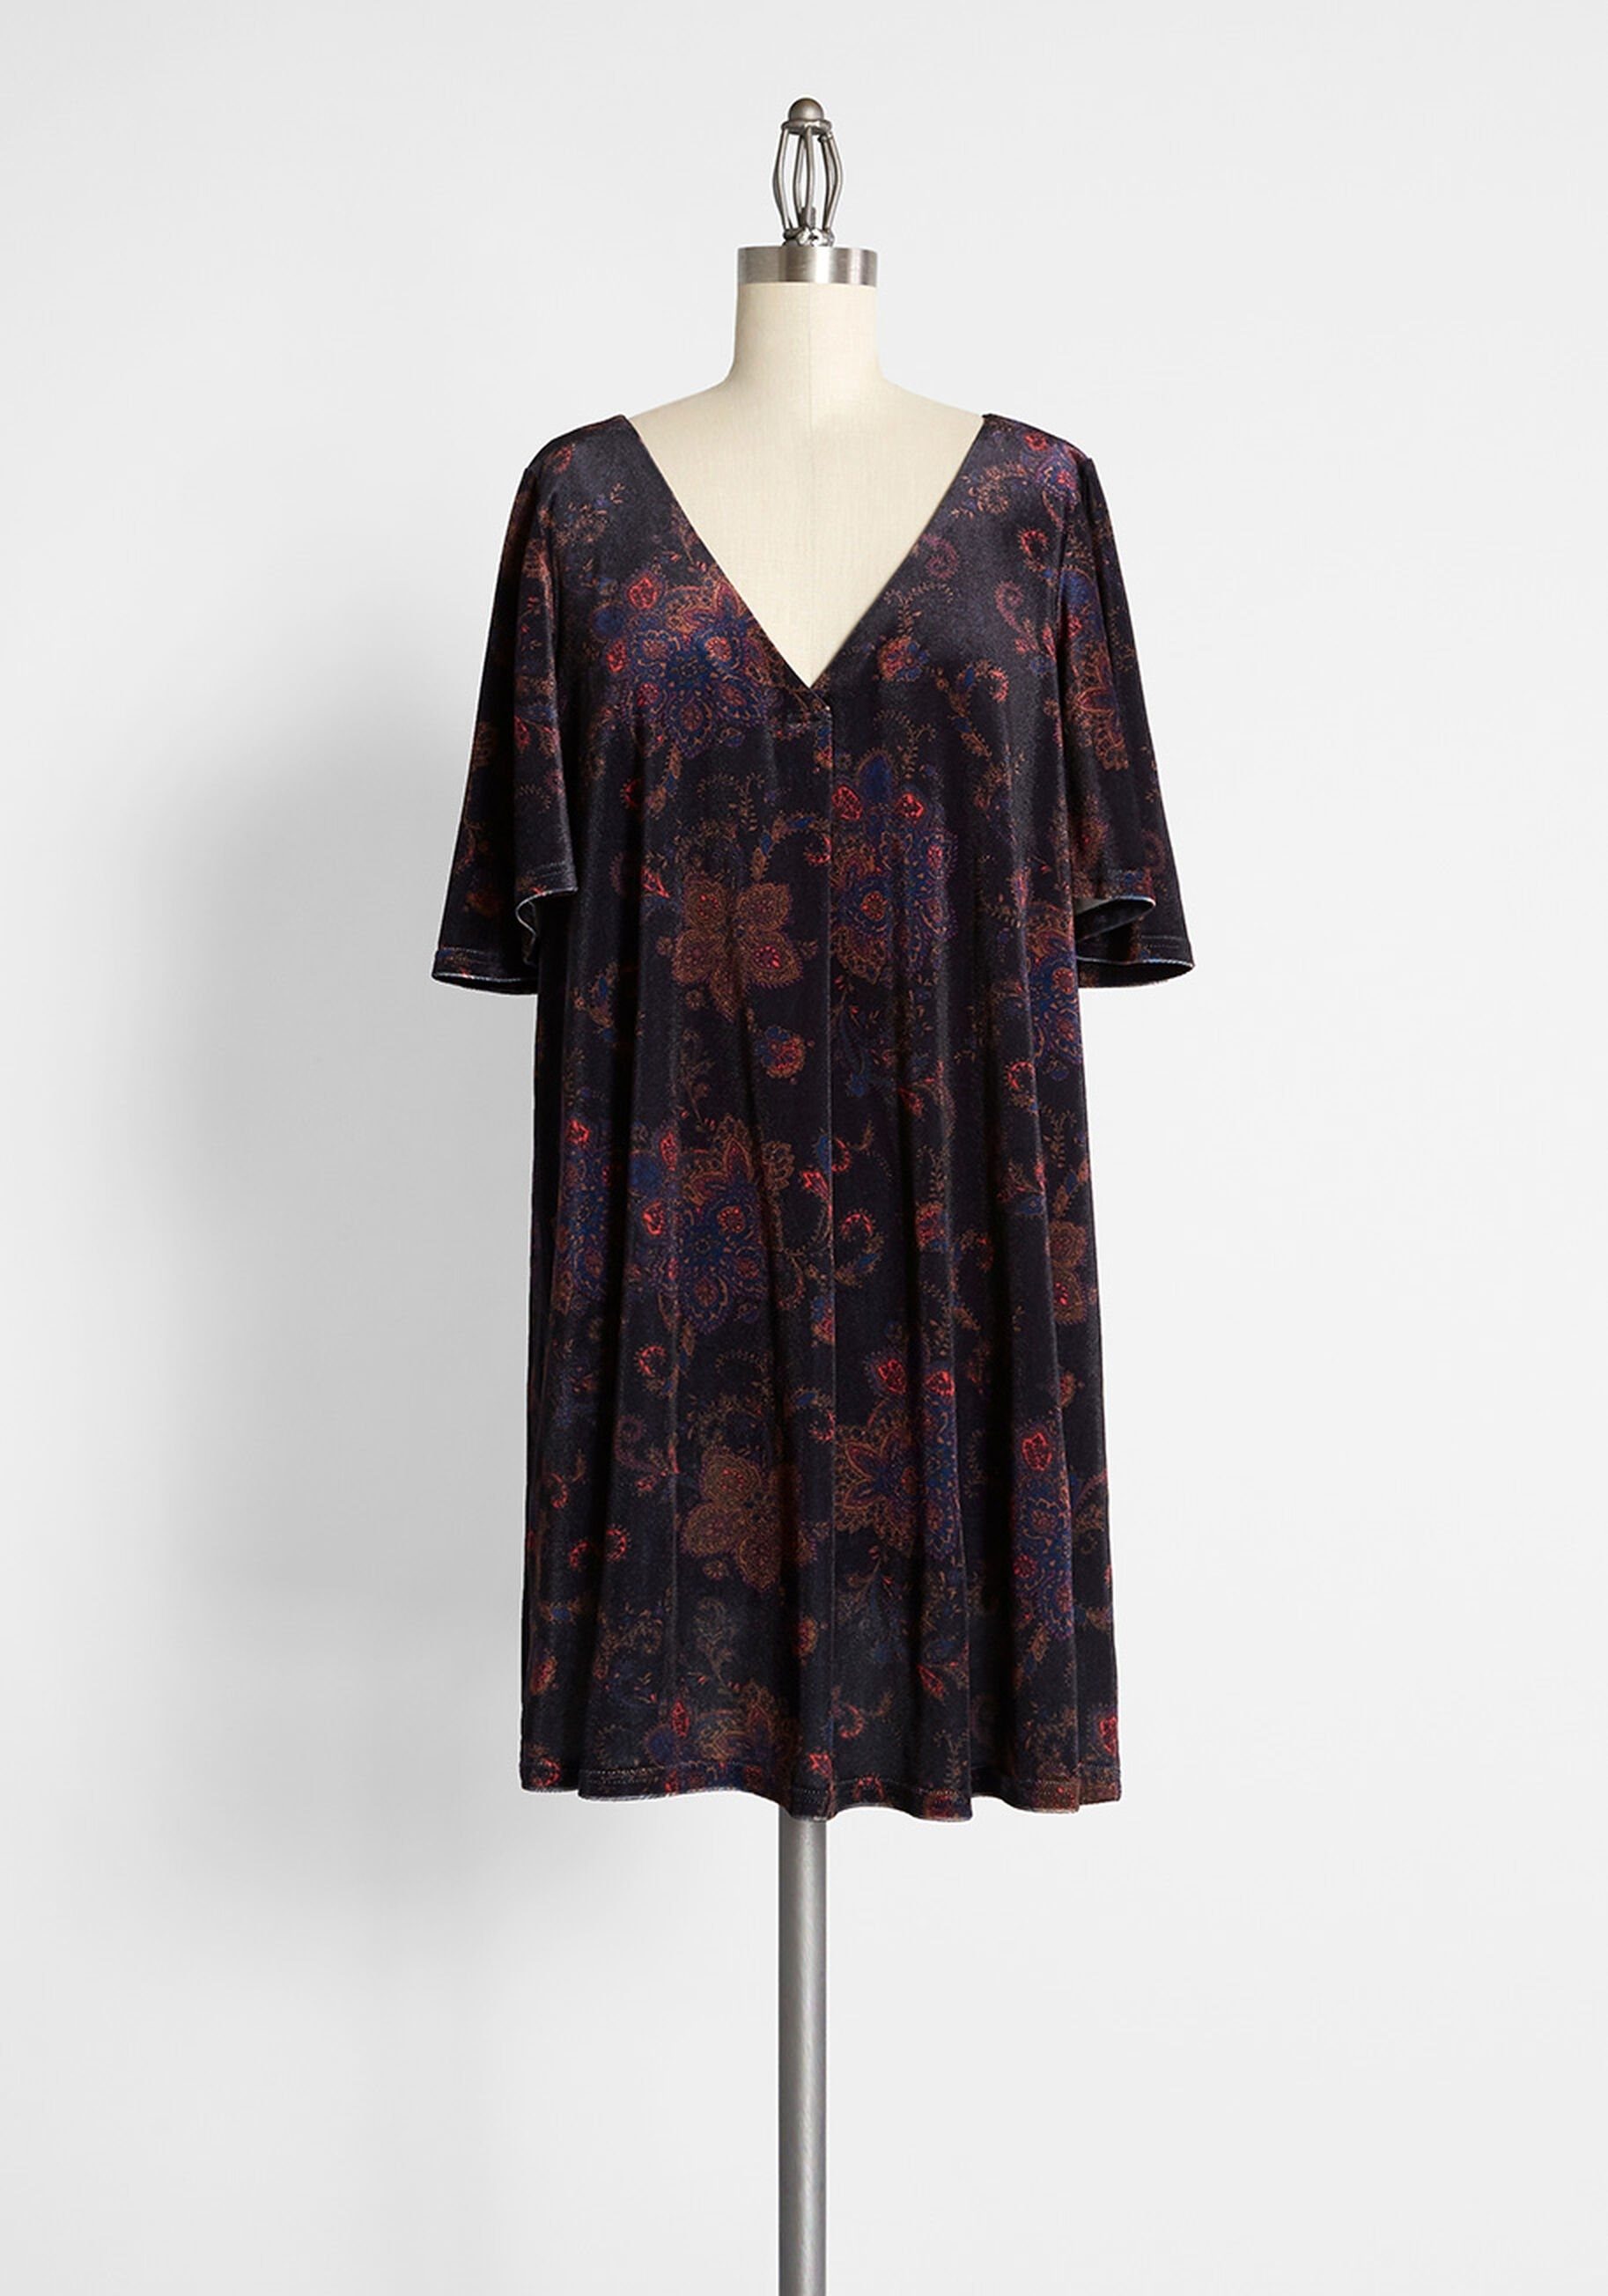 a black dress with an orange, pink, and blue-hued paisley-adorned frock has short, flounce sleeves